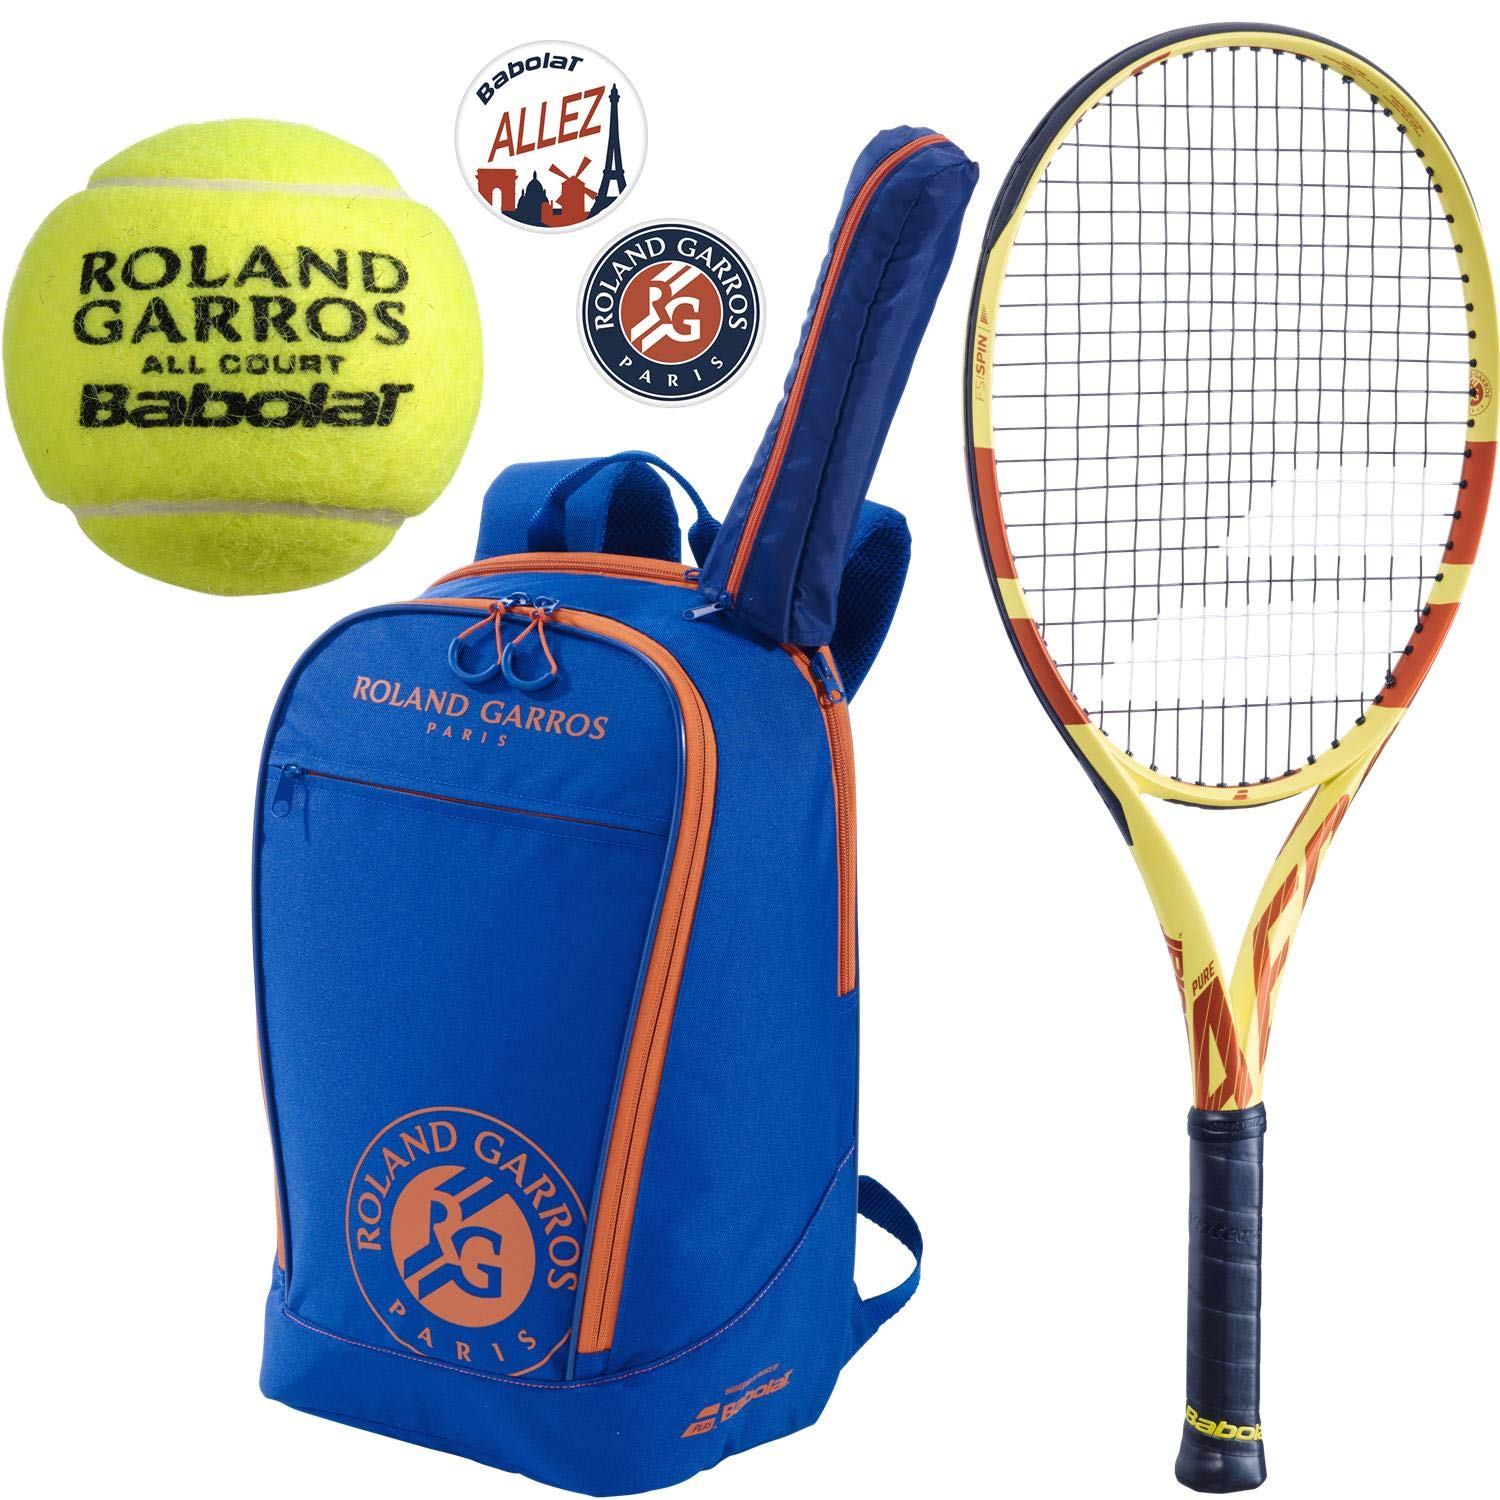 Babolat Roland Garros Pure Aero 26'' Junior Tennis Racquet (4 1/8'' Grip) Bundled with an RG Club Backpack, a can of RG All Court Tennis Balls and a Set of RG Dampeners